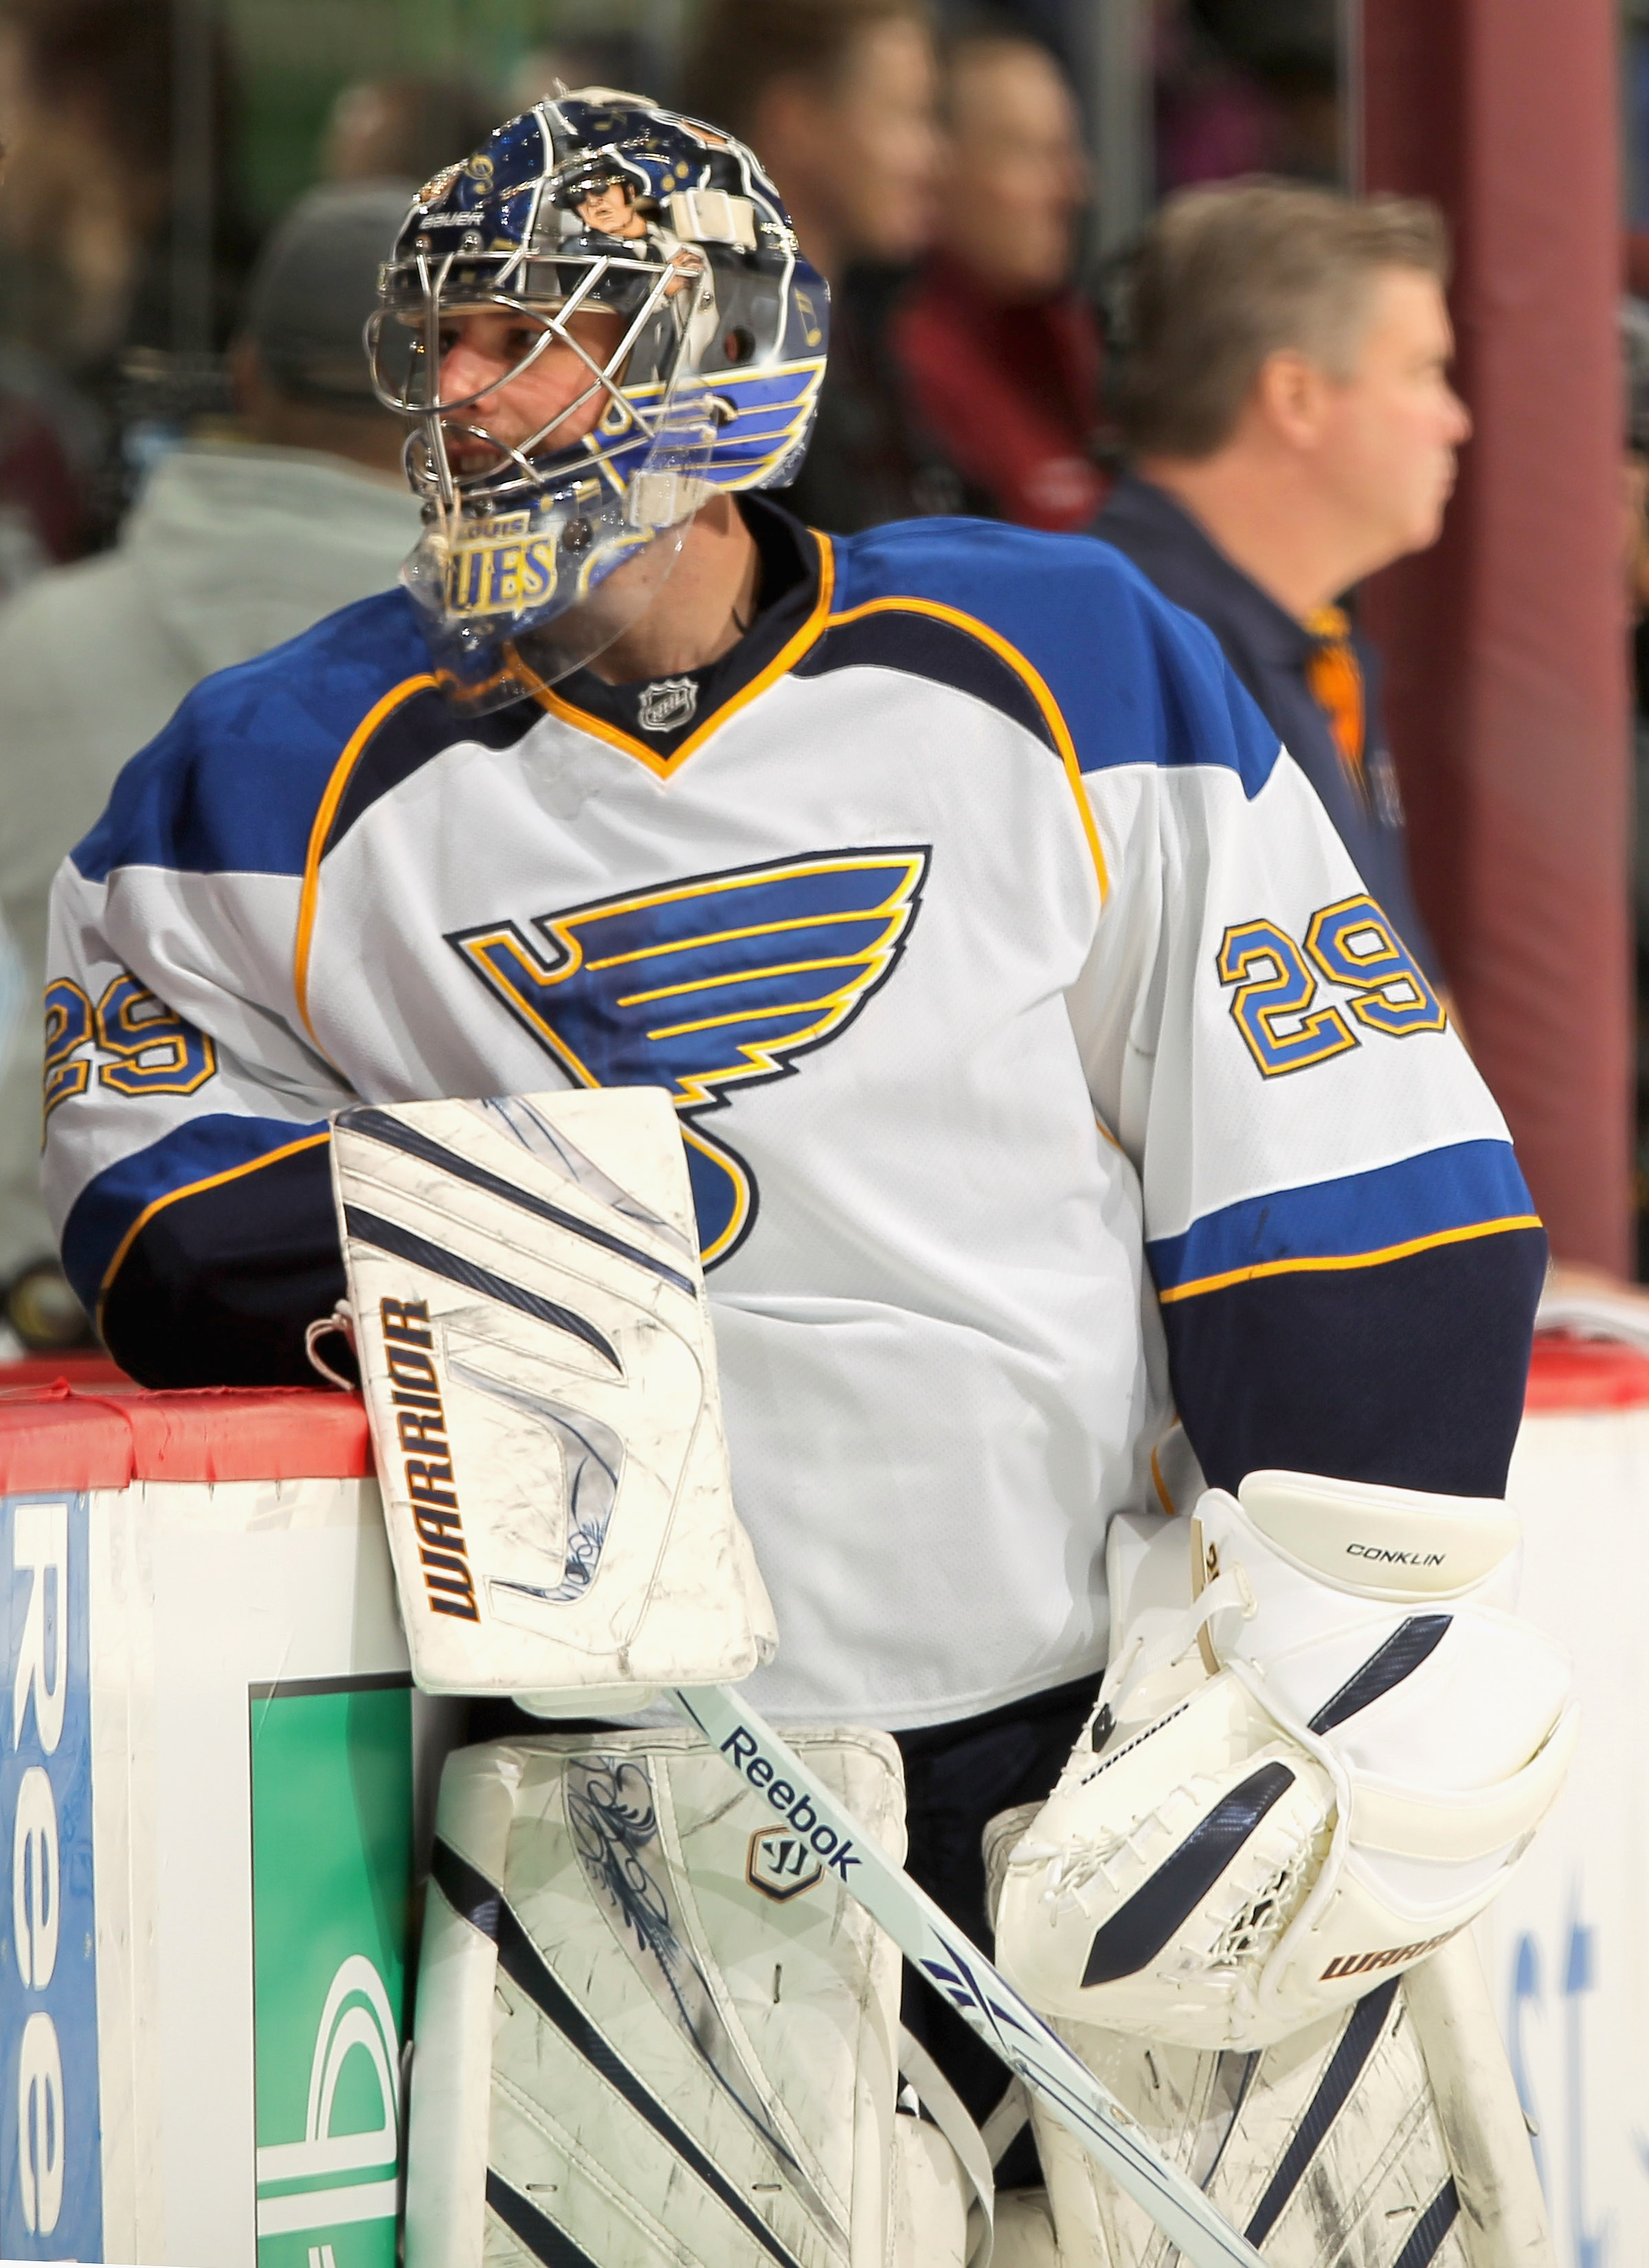 DENVER - NOVEMBER 15:  Goalie Ty Conklin #29 of the St. Louis Blues warms up prior to facing the Colorado Avalanche at the Pepsi Center on November 15, 2010 in Denver, Colorado. The Avalacnhe defeated the Blues 6-3.  (Photo by Doug Pensinger/Getty Images)